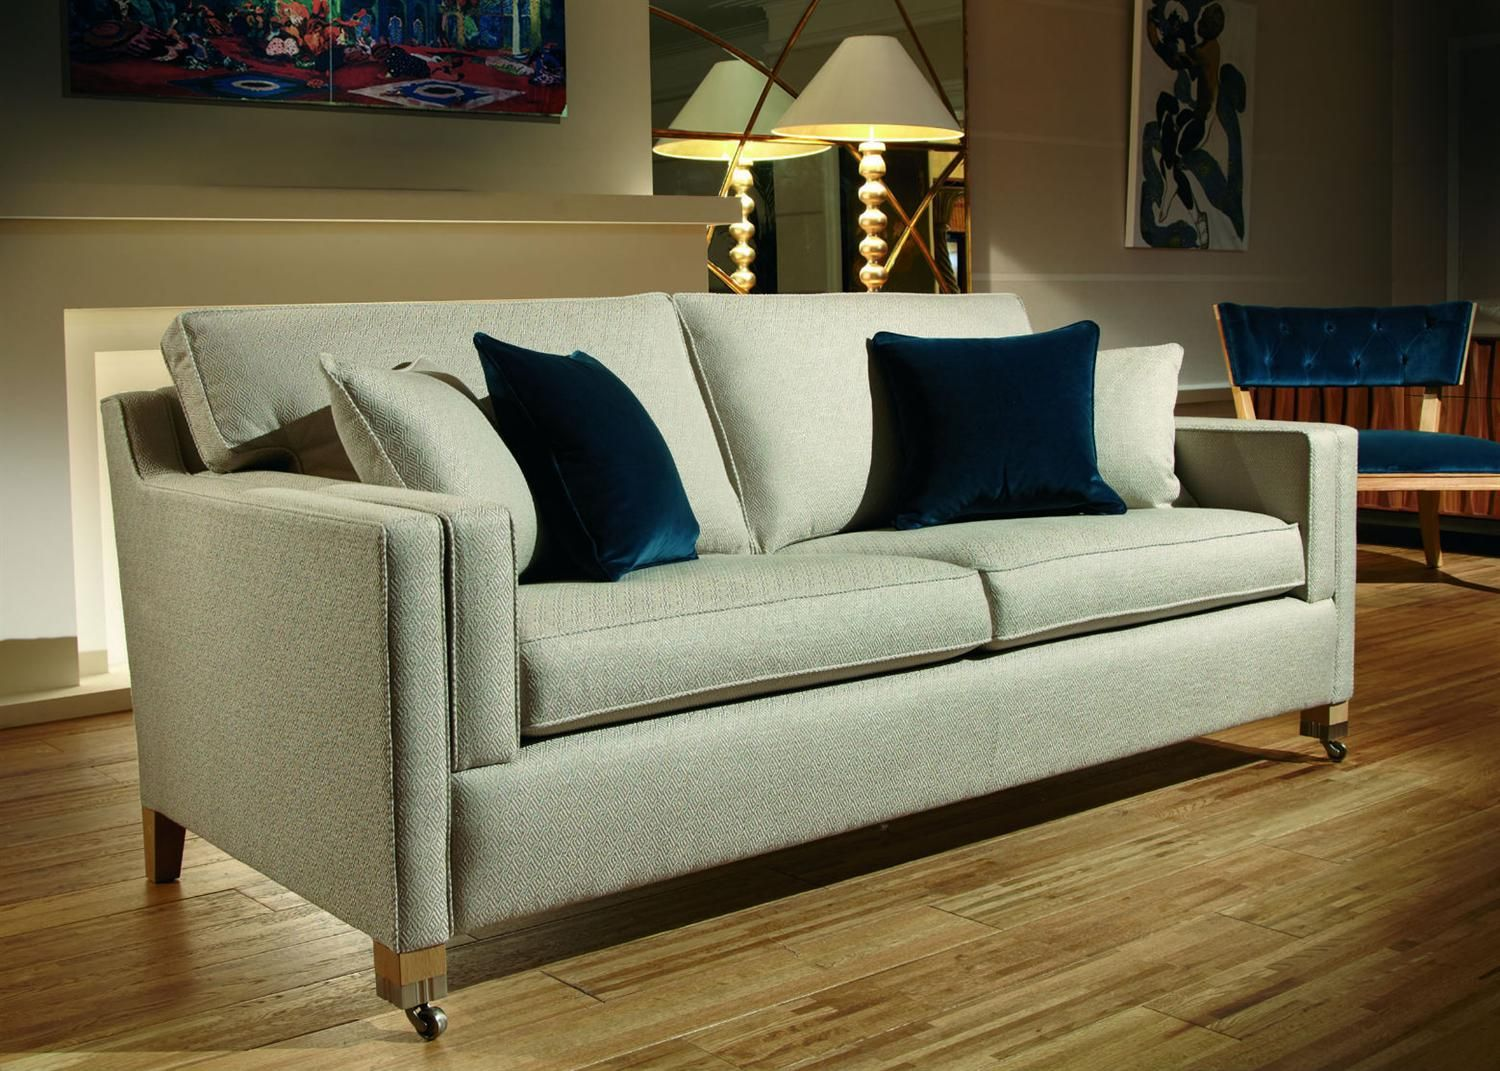 Interio Sofa George Domus Hopper Sofa Collection From George Tannahill And Sons